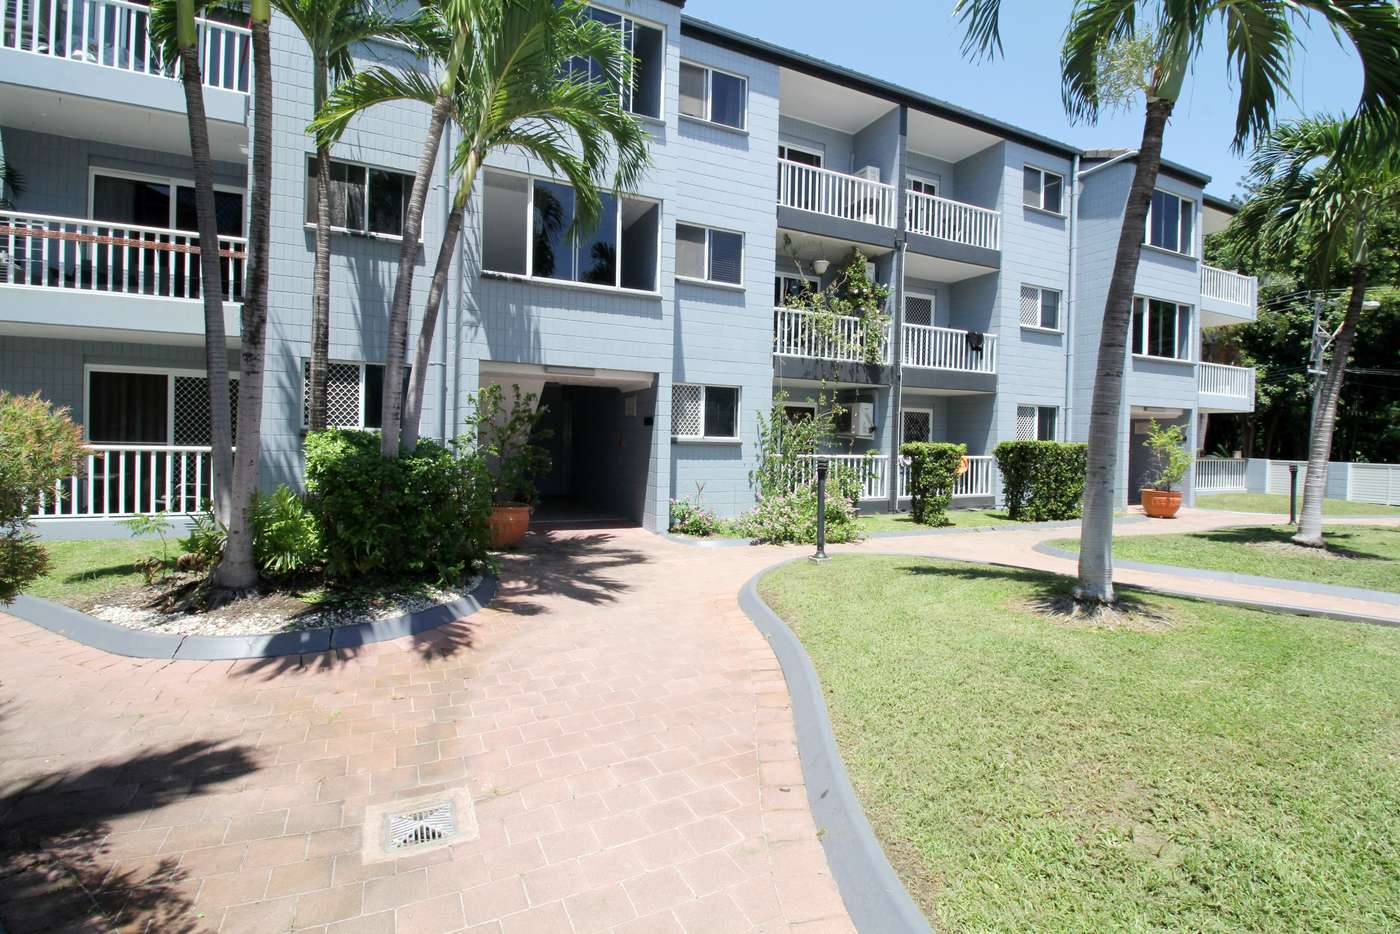 Main view of Homely unit listing, 109/15-19 Gregory Street, North Ward QLD 4810